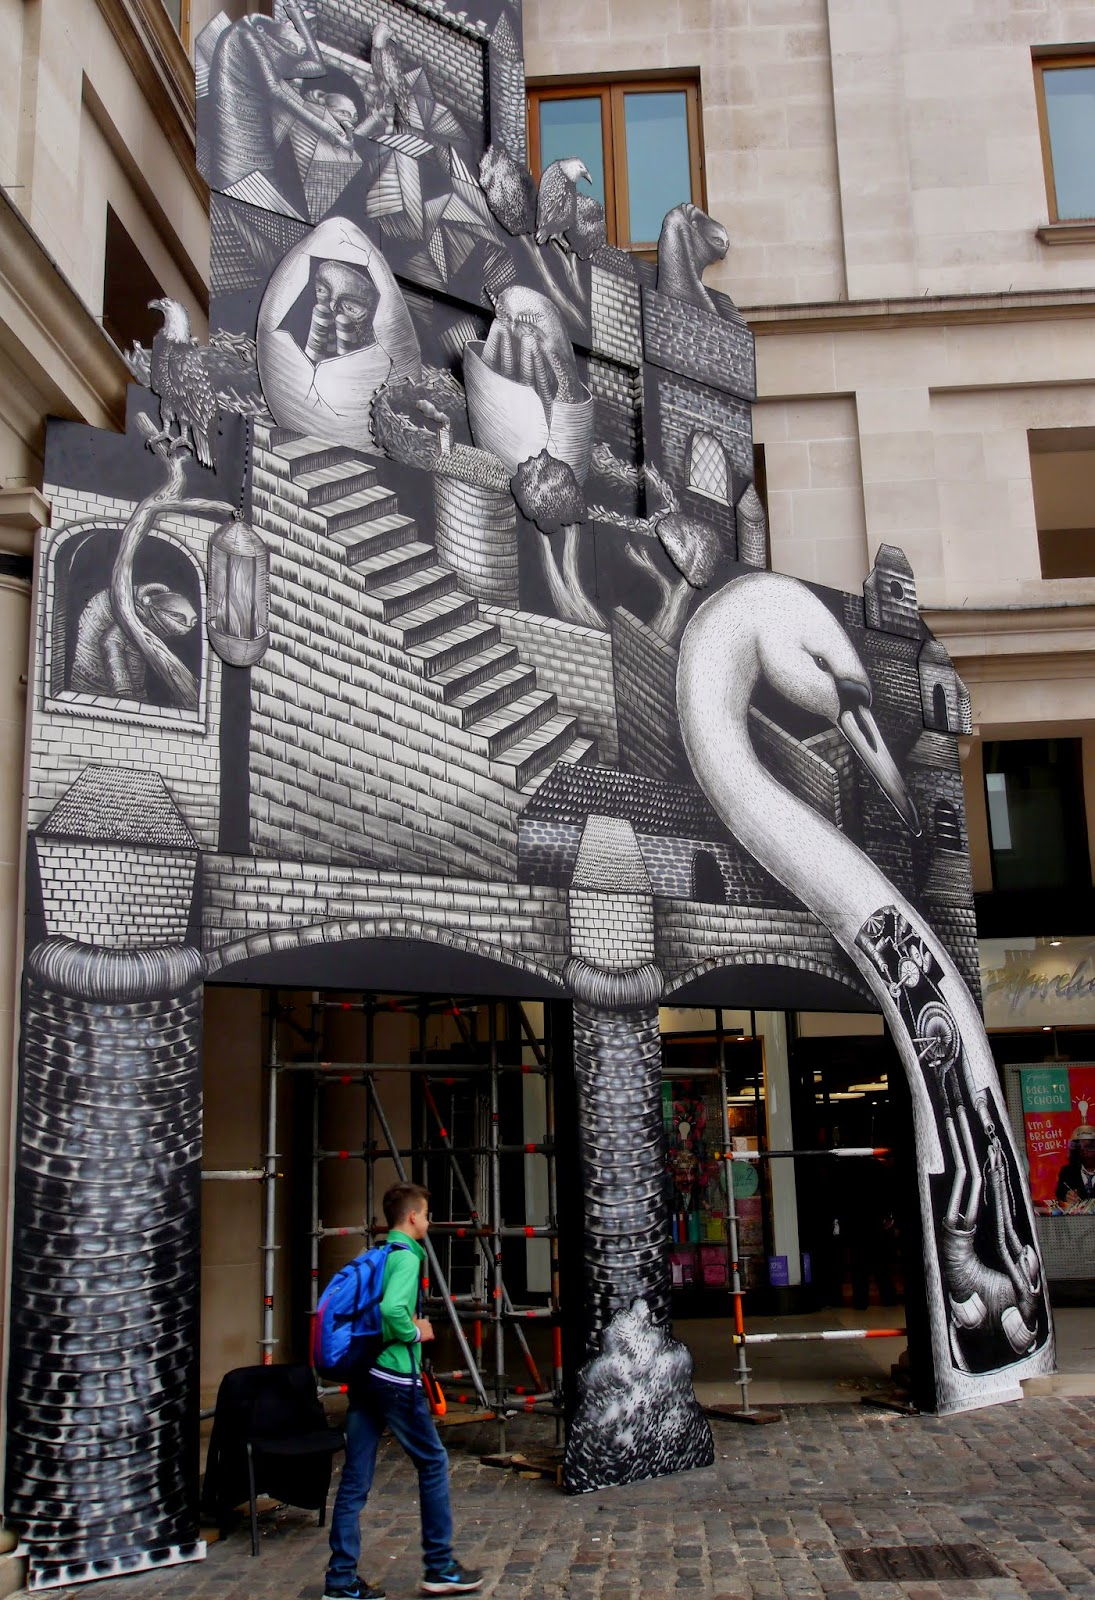 phlegm-for-the-royal-opera-house-london-03